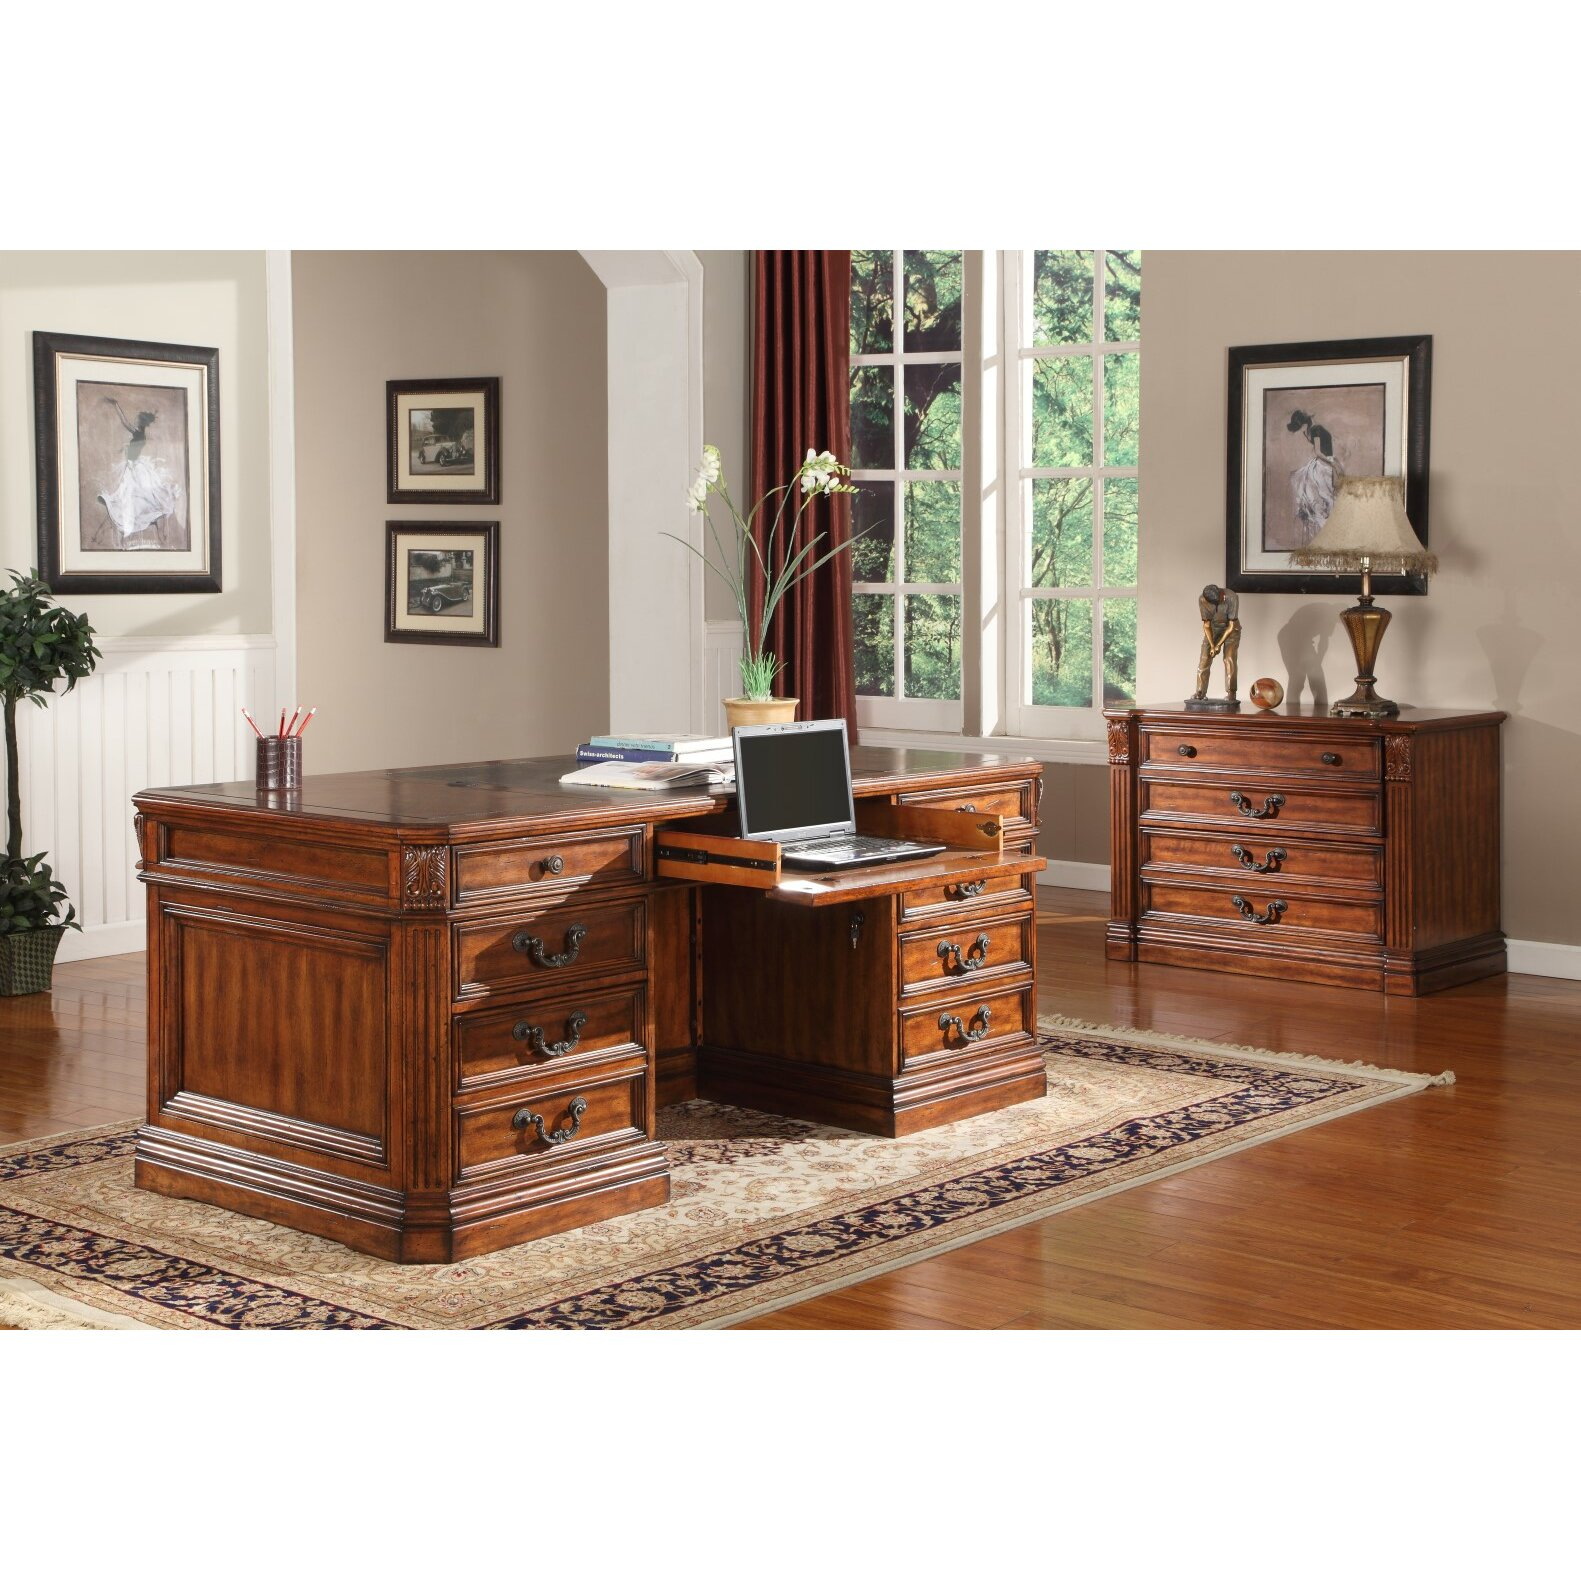 Parker House Grand Manor Granada 4 Drawer Lateral File